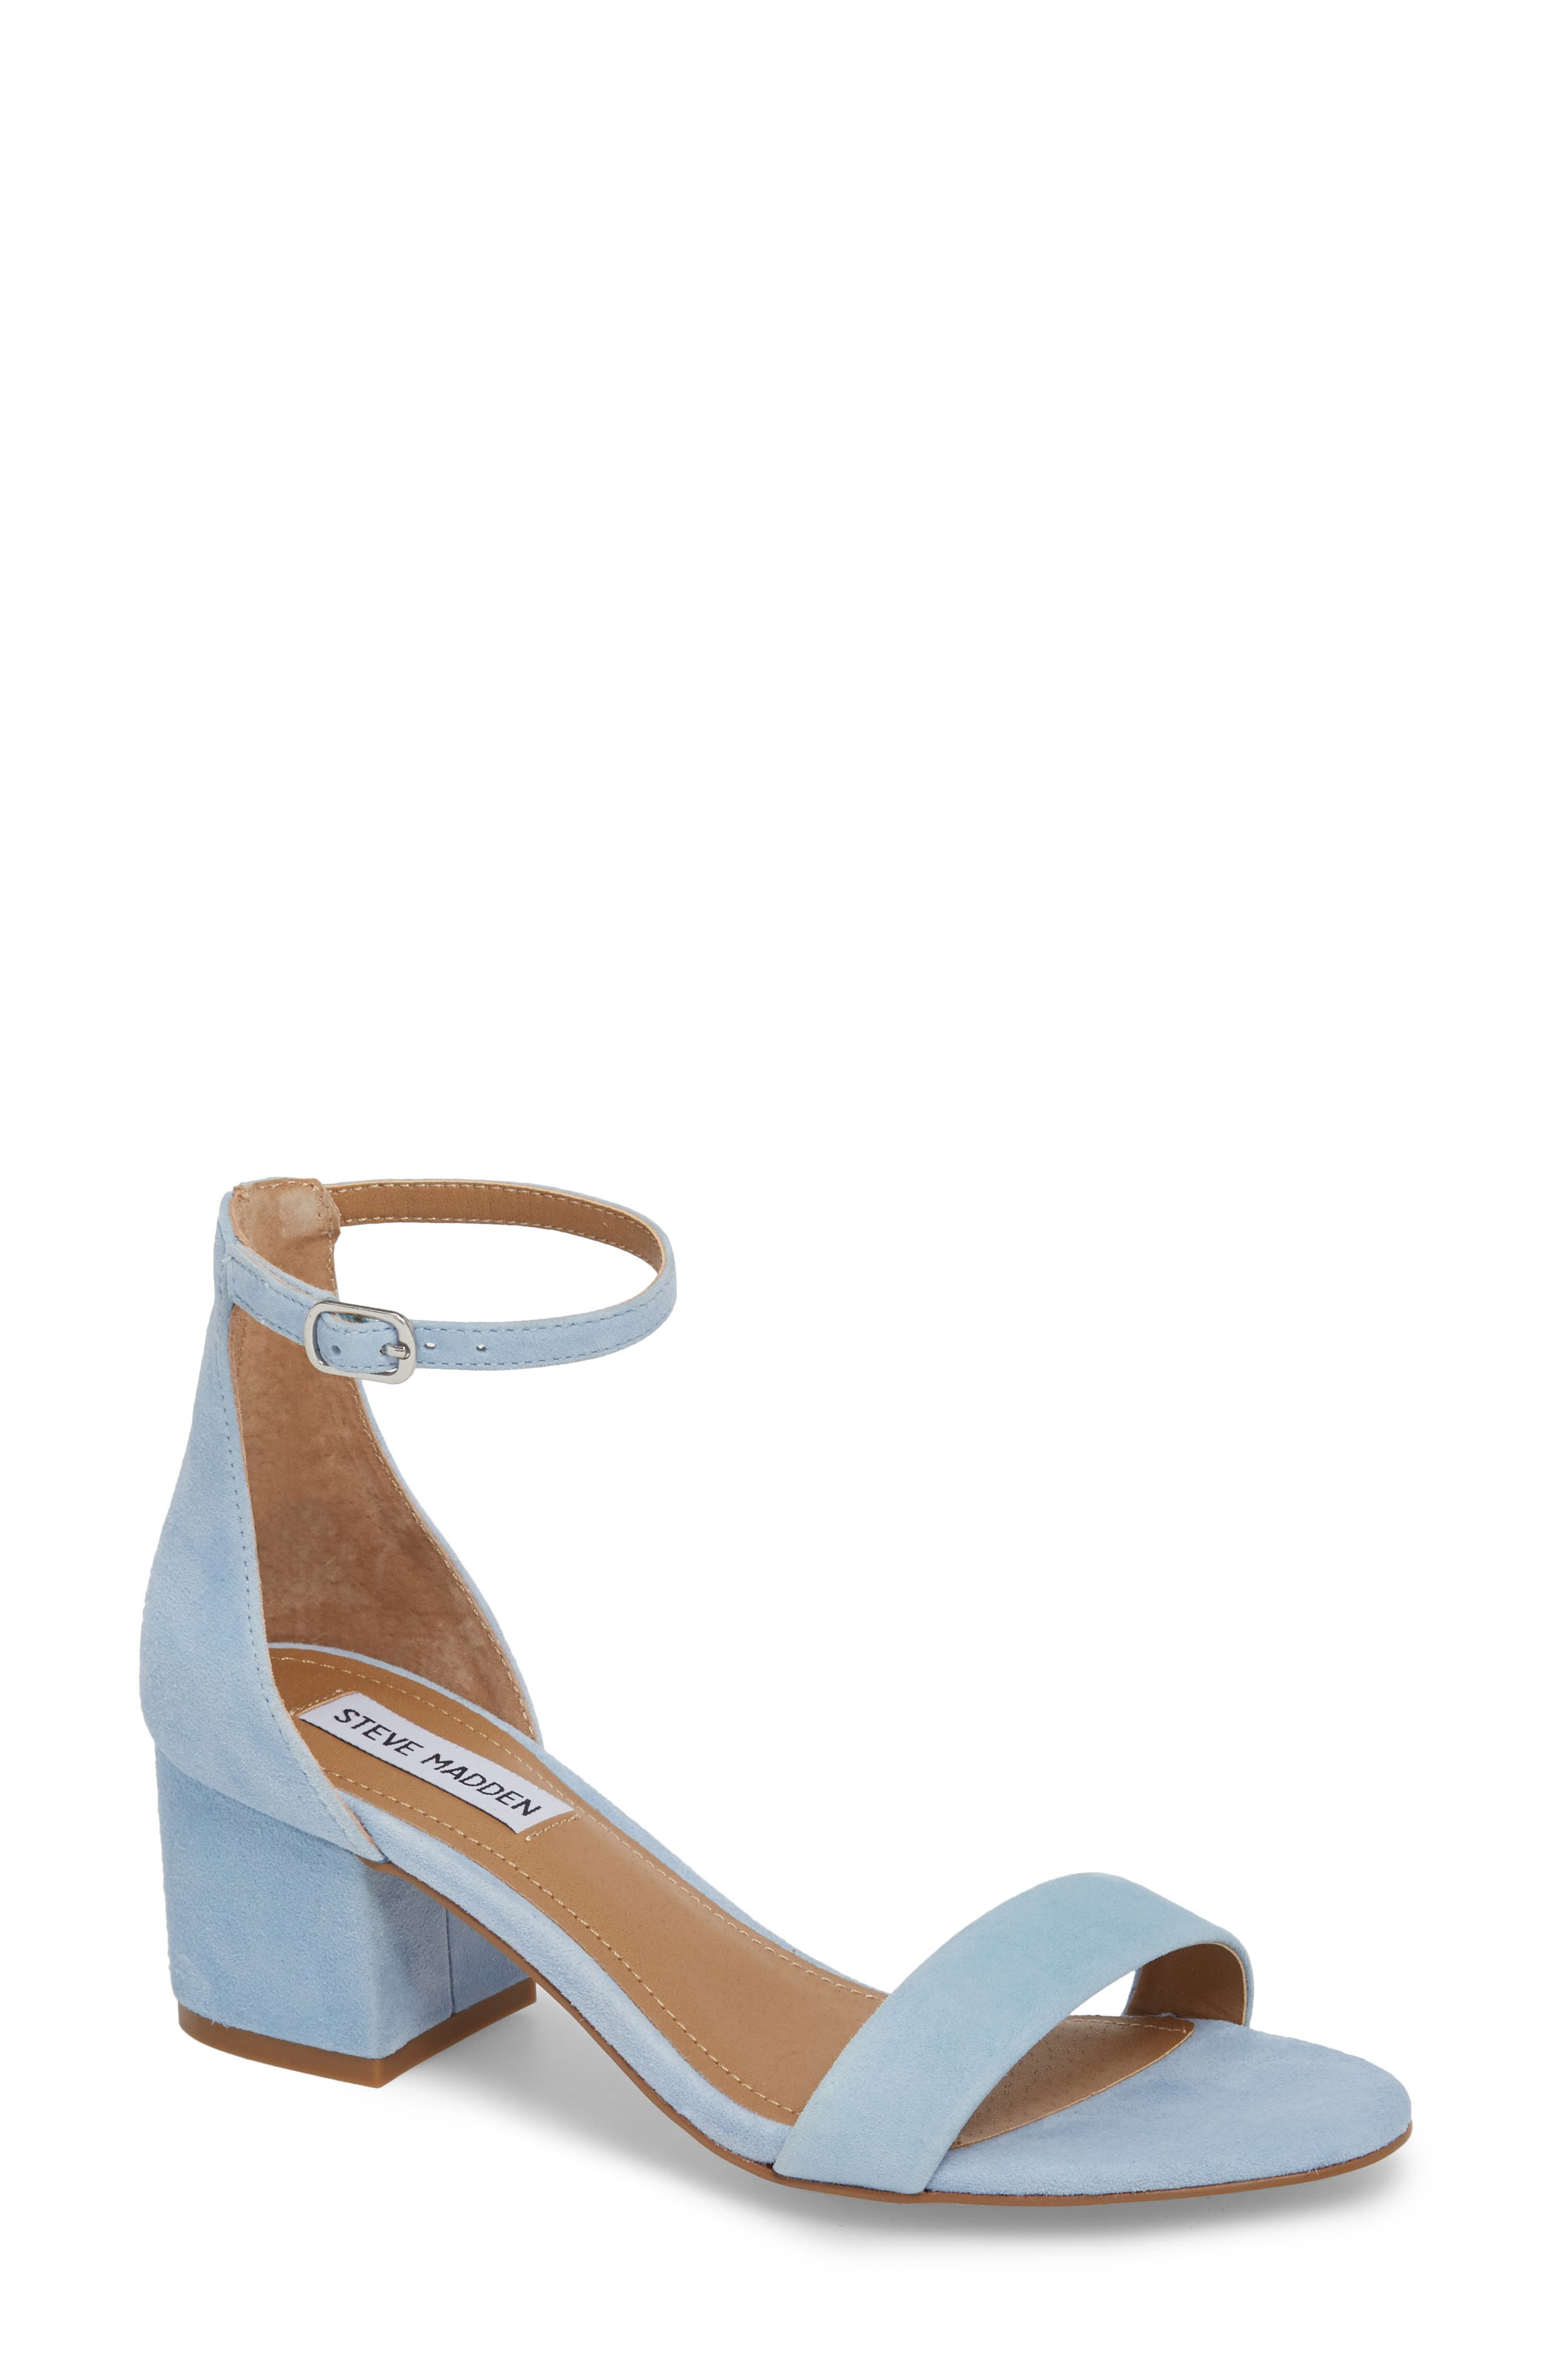 ,                             Irenee Ankle Strap Sandal,                             Main thumbnail 66, color,                             430